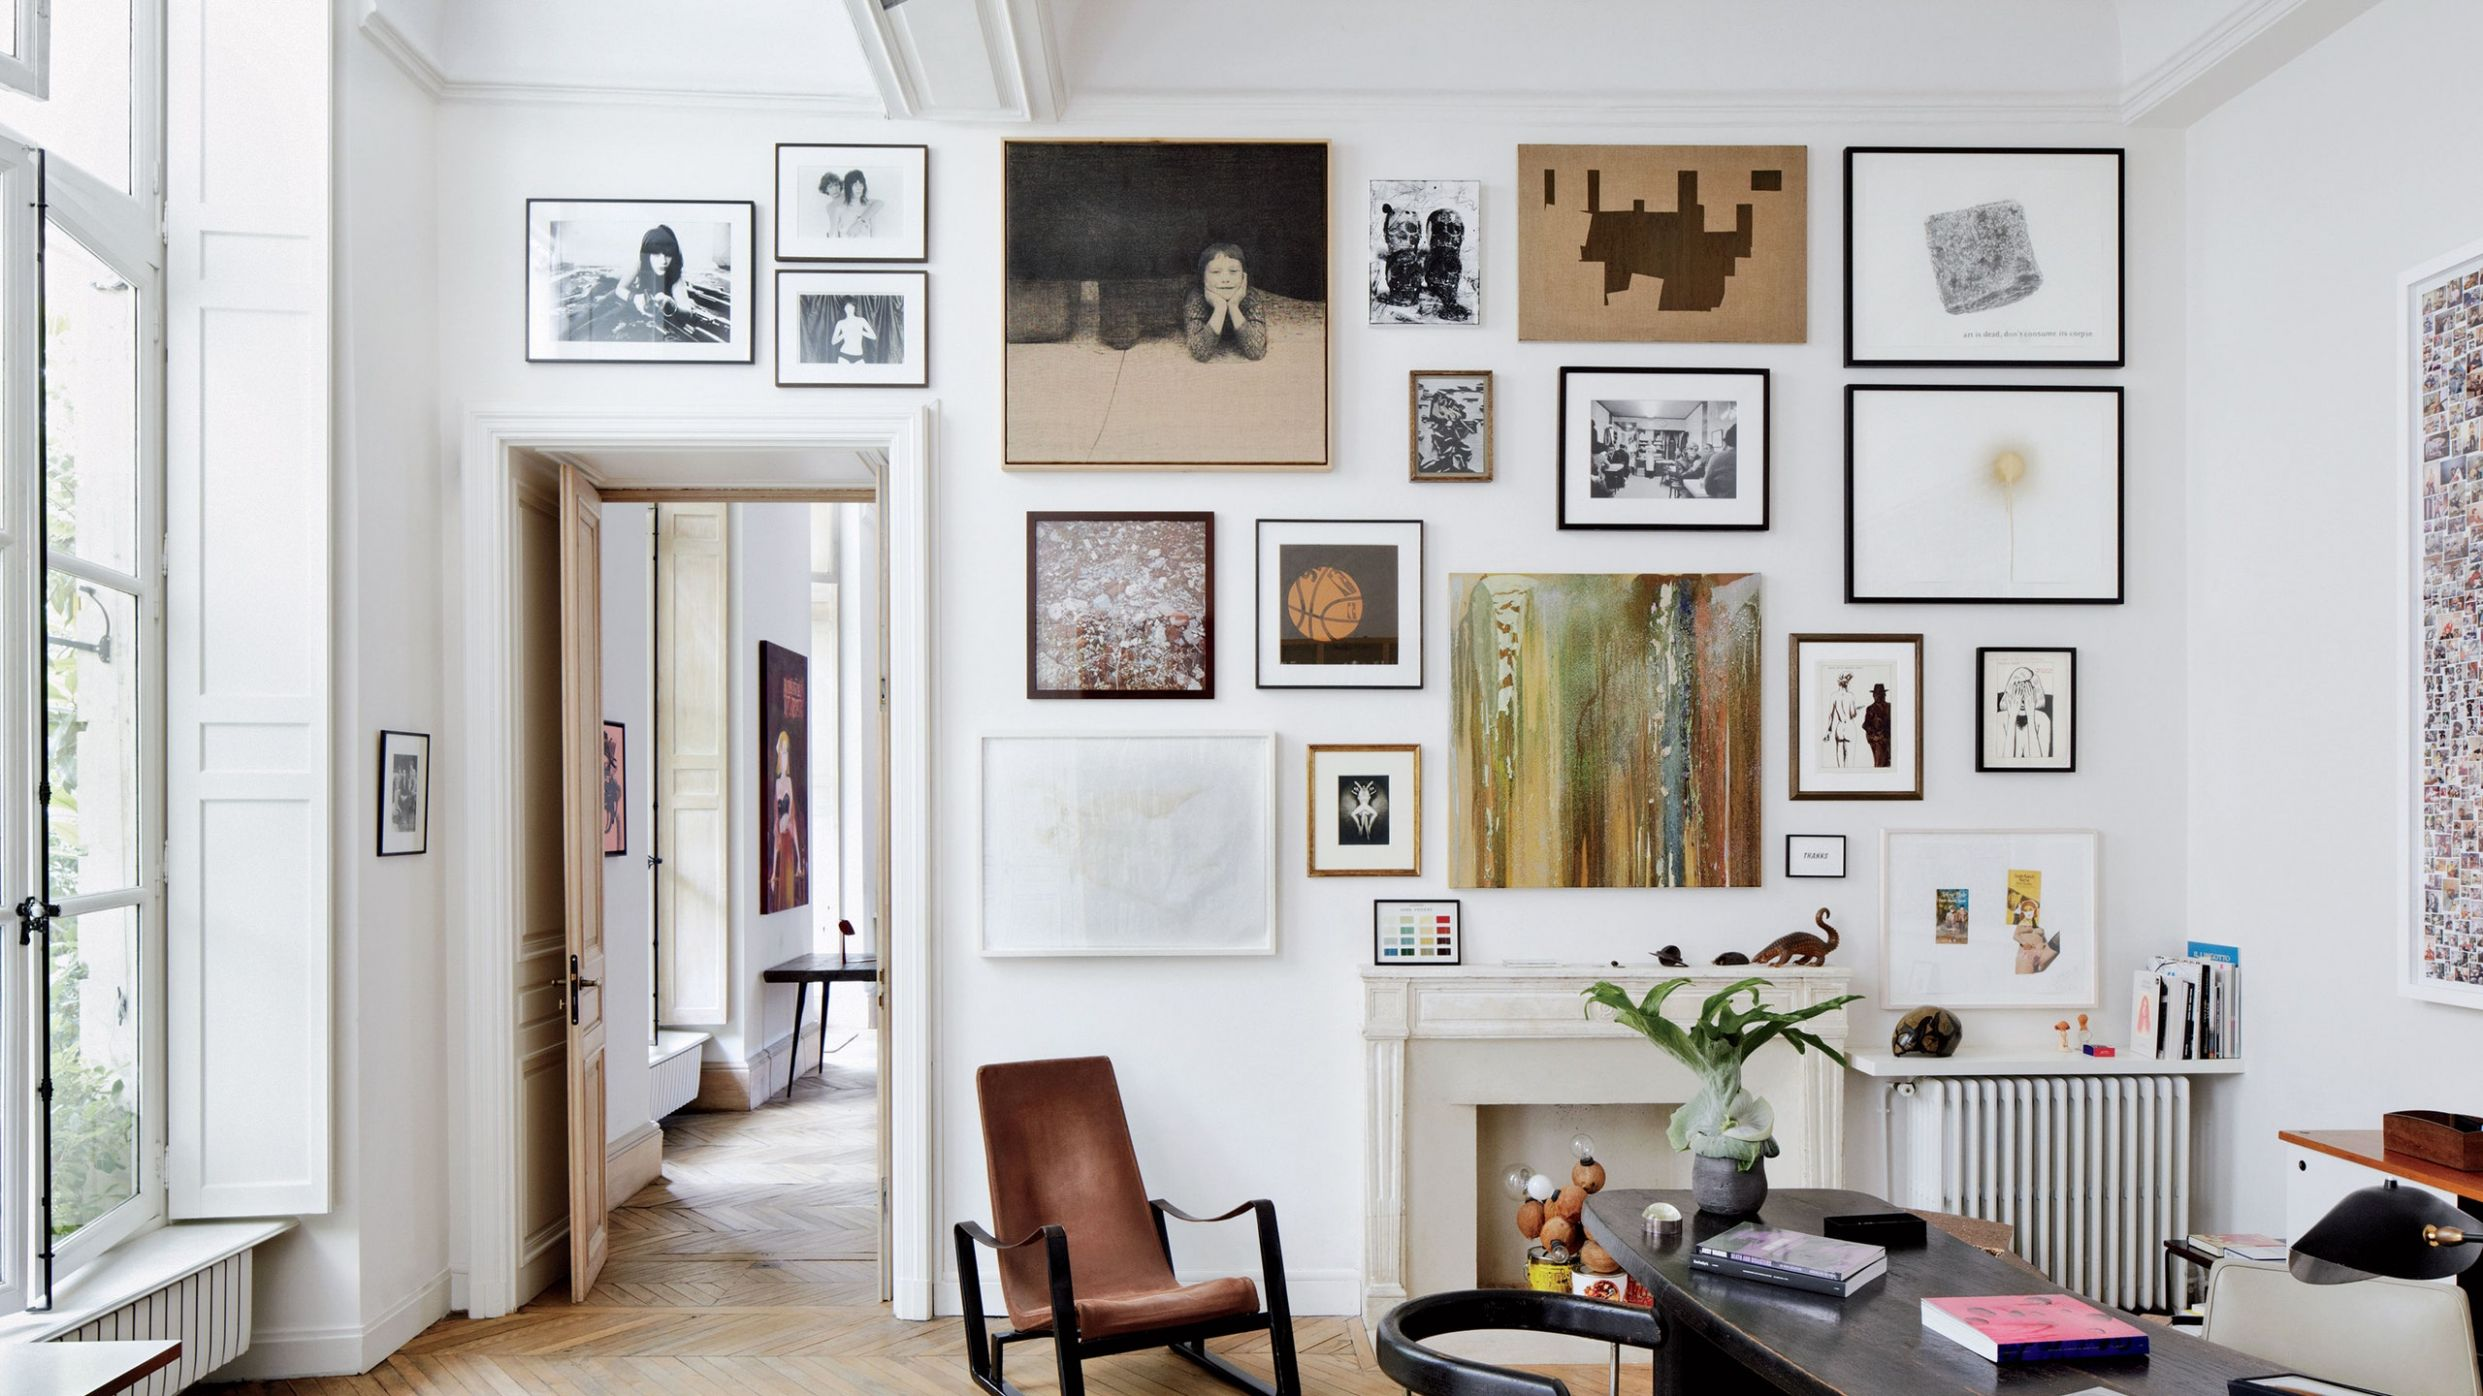 8 Wall Decor Ideas to Refresh Your Space | Architectural Digest